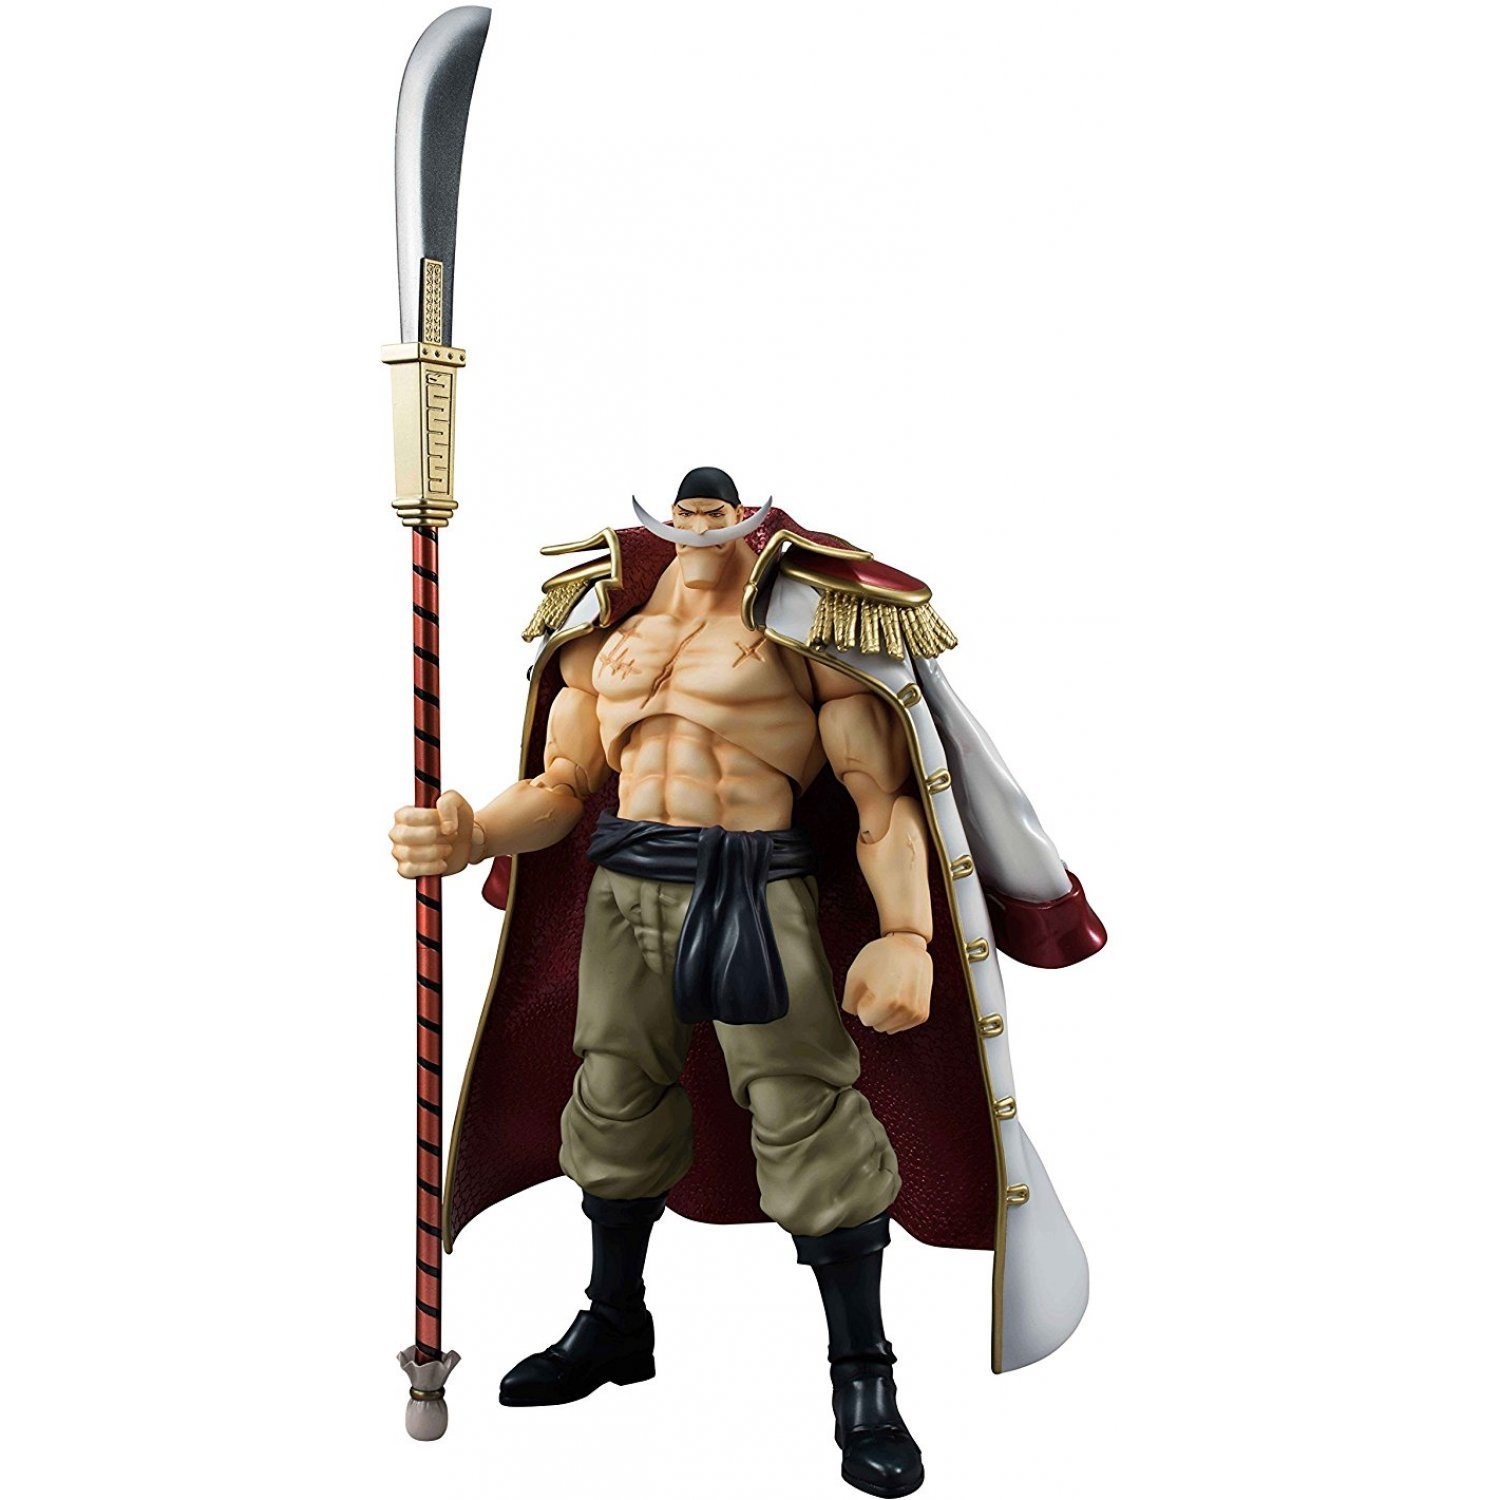 Variable action heroes one piece whitebeard edward newgate - Newgate one piece ...